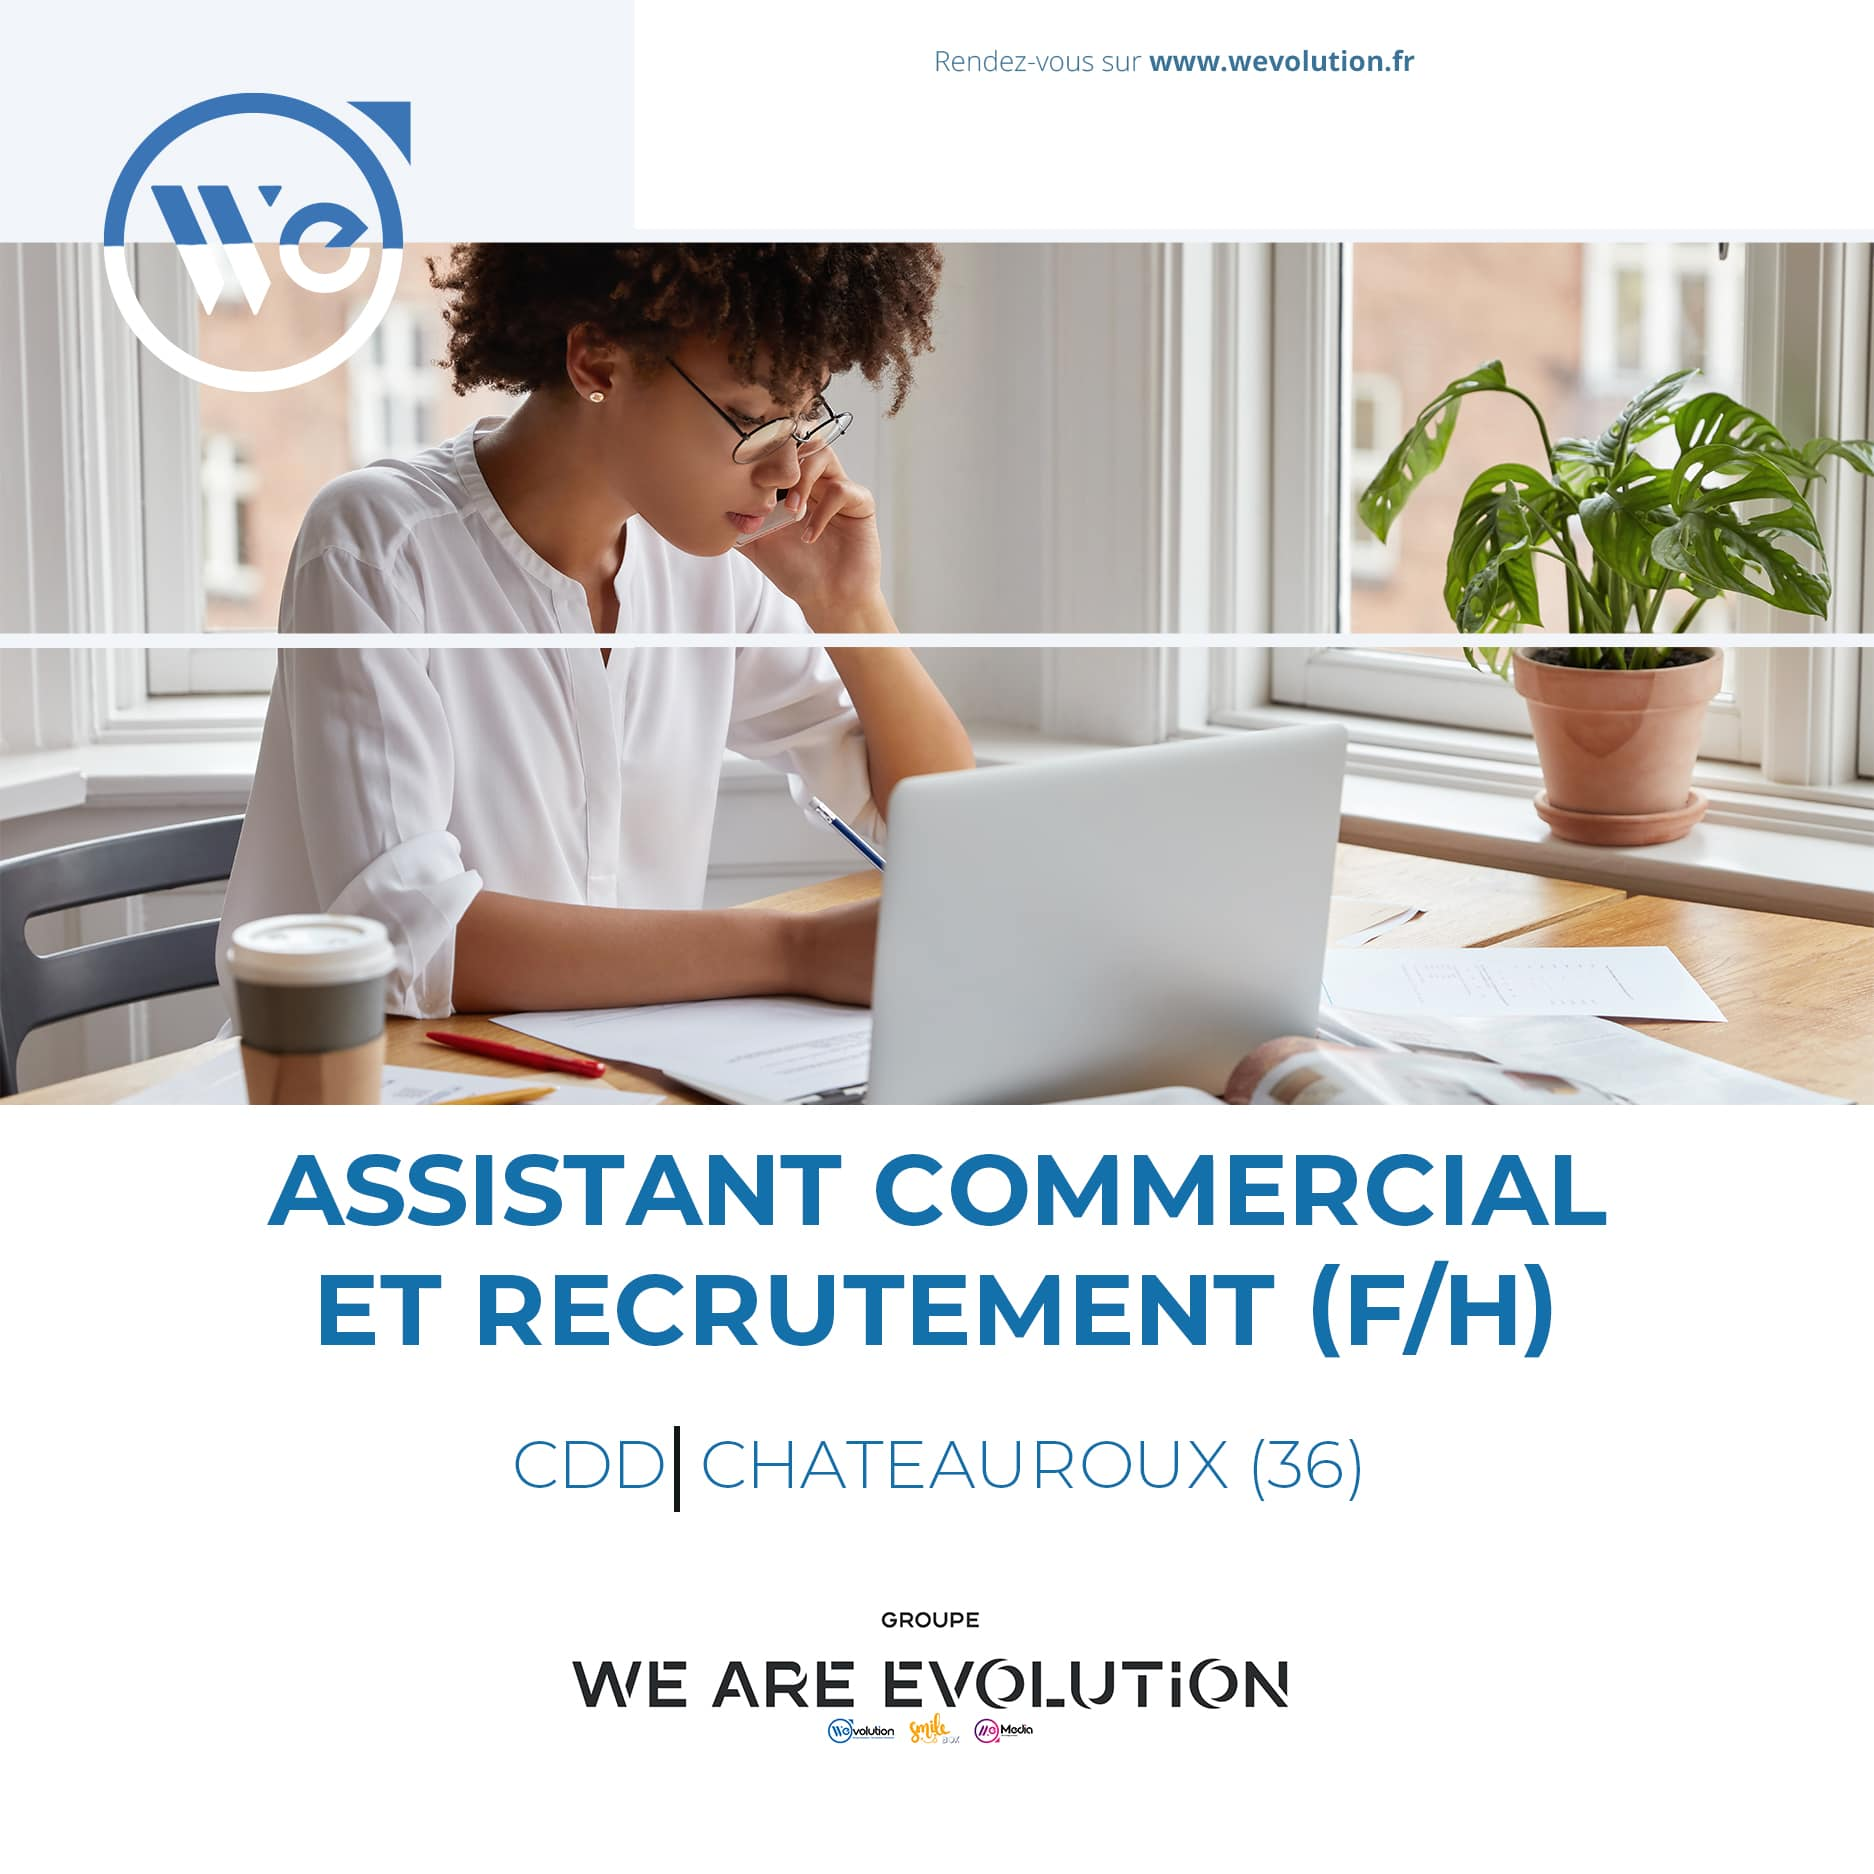 ASSISTANT COMMERCIAL & RECRUTEMENT (F/H)